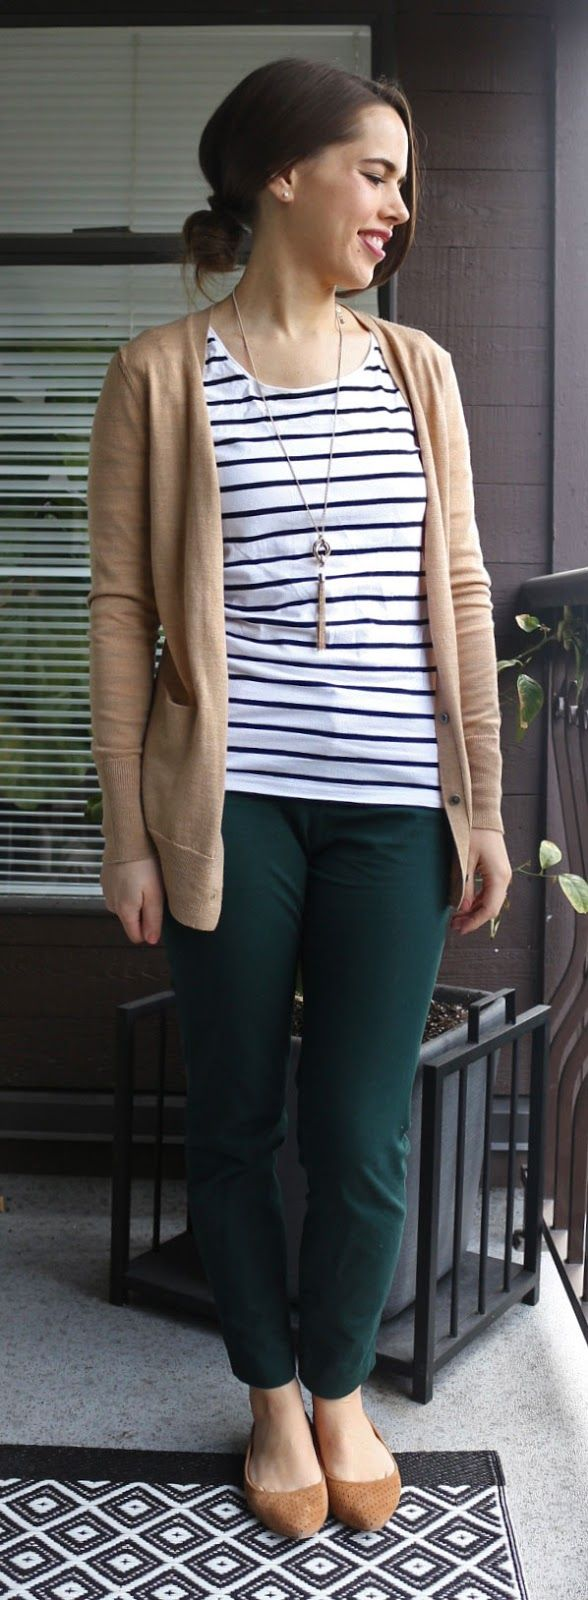 Jules in Flats - Striped Shirt, Camel Cardigan, Ankle ...